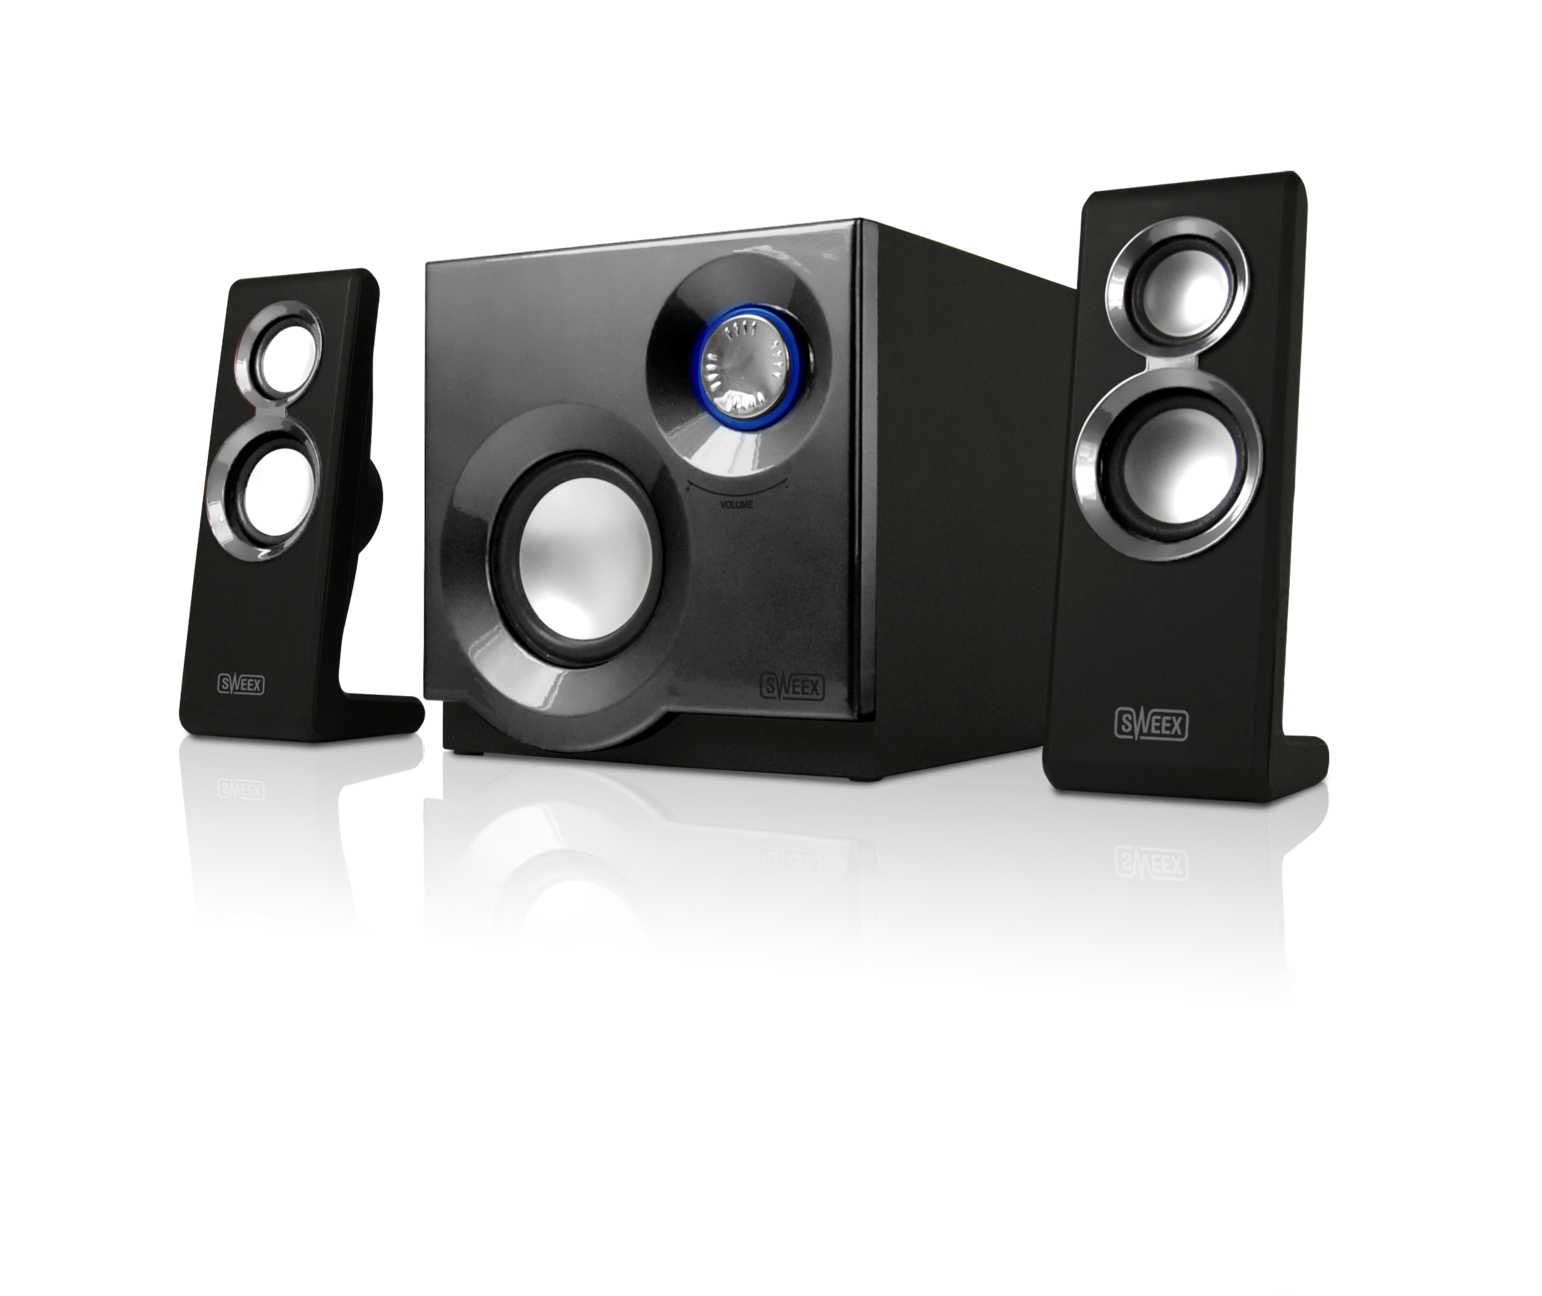 Image of 2.1 Speaker System Purephonic 60 Watt Silver - Sweex